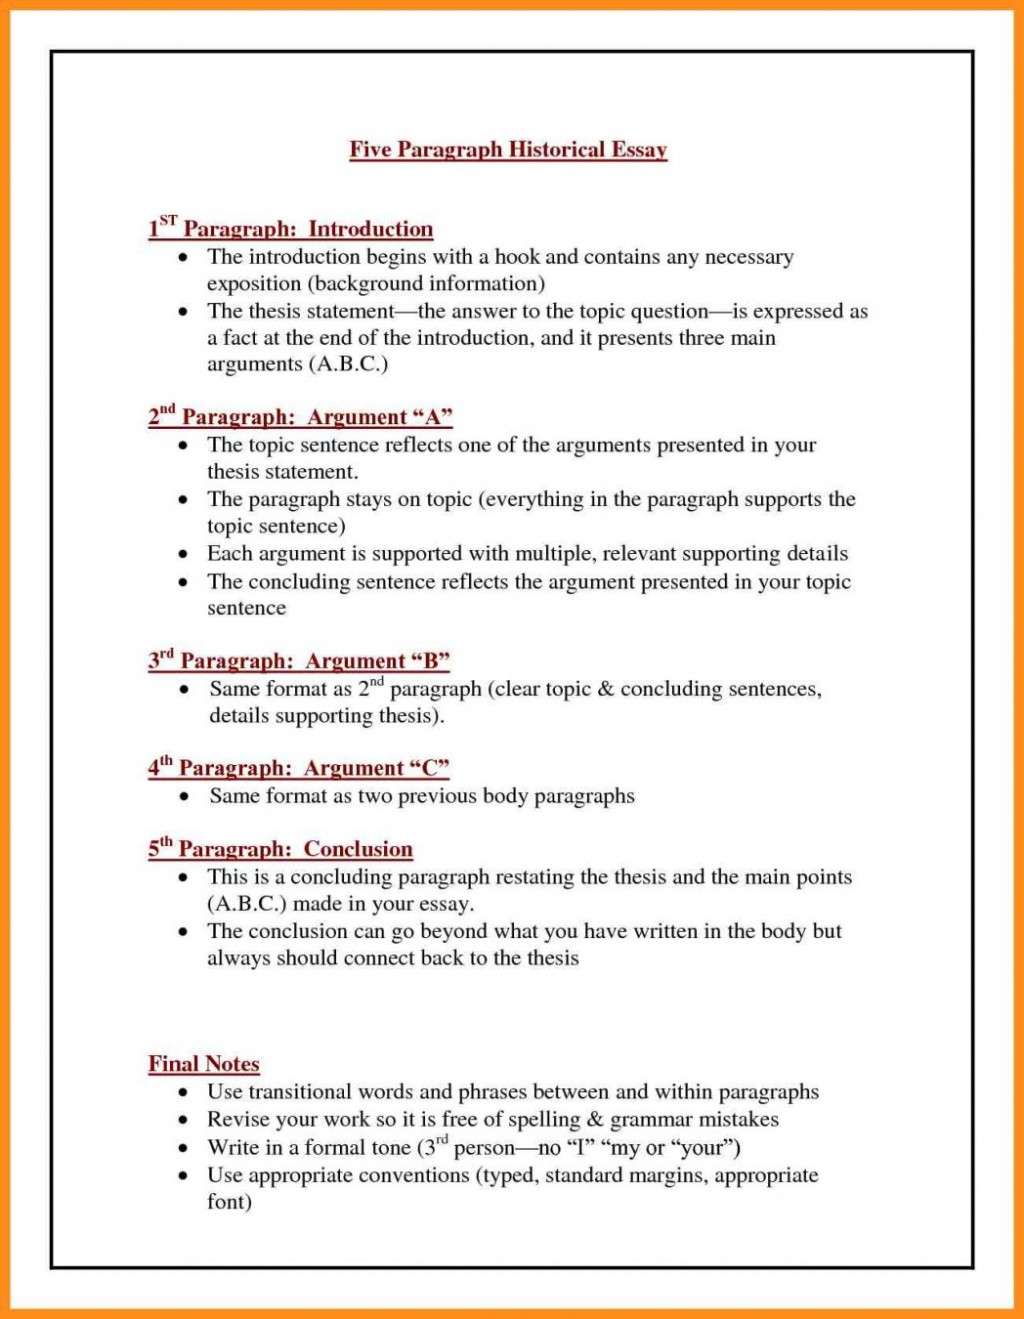 009 How Many Paragraphs Are In Essay Words Introduction Homework Writing Service To Start Off Sentence An Best Ideas Of Sample Five Paragraph Amazing Word Is Par End Formidable A Argumentative Narrative Large